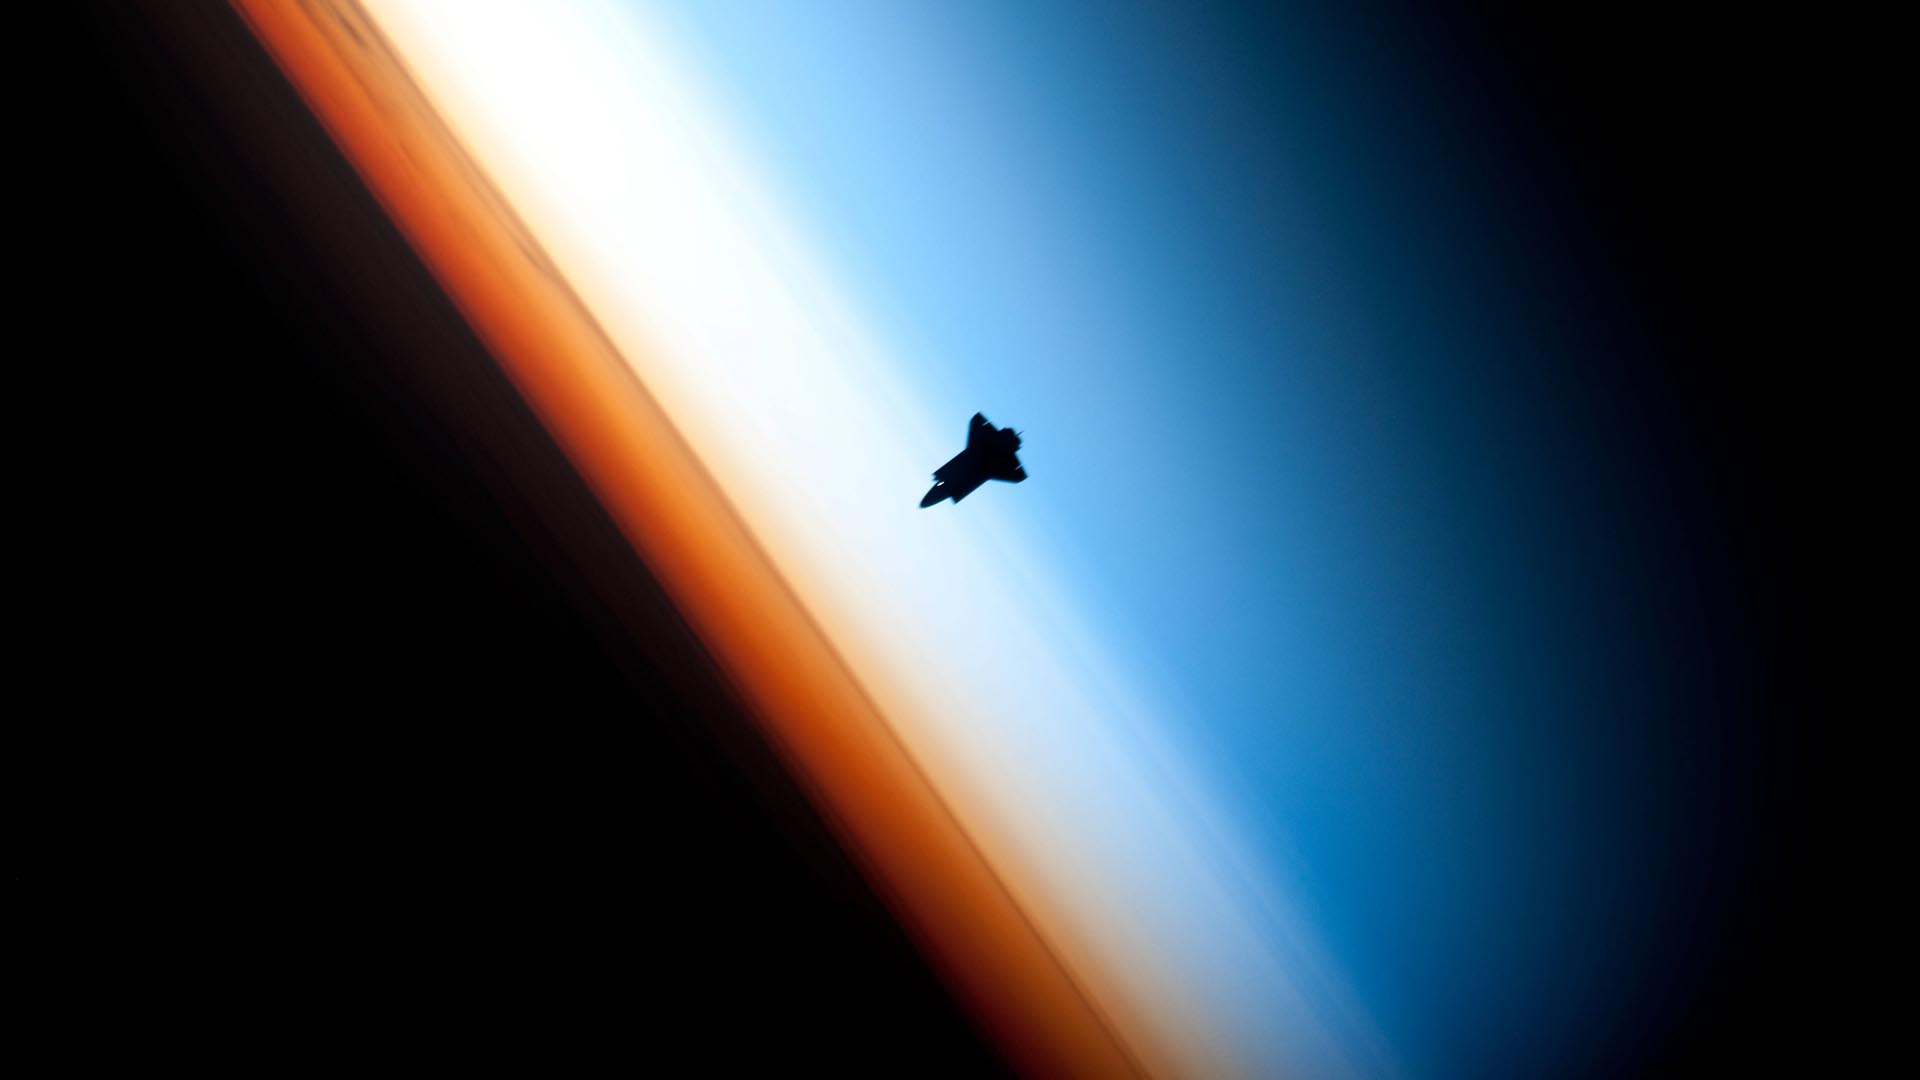 Space Shuttle HD Wallpaper FullHDWpp   Full HD Wallpapers 1920x1080 1920x1080